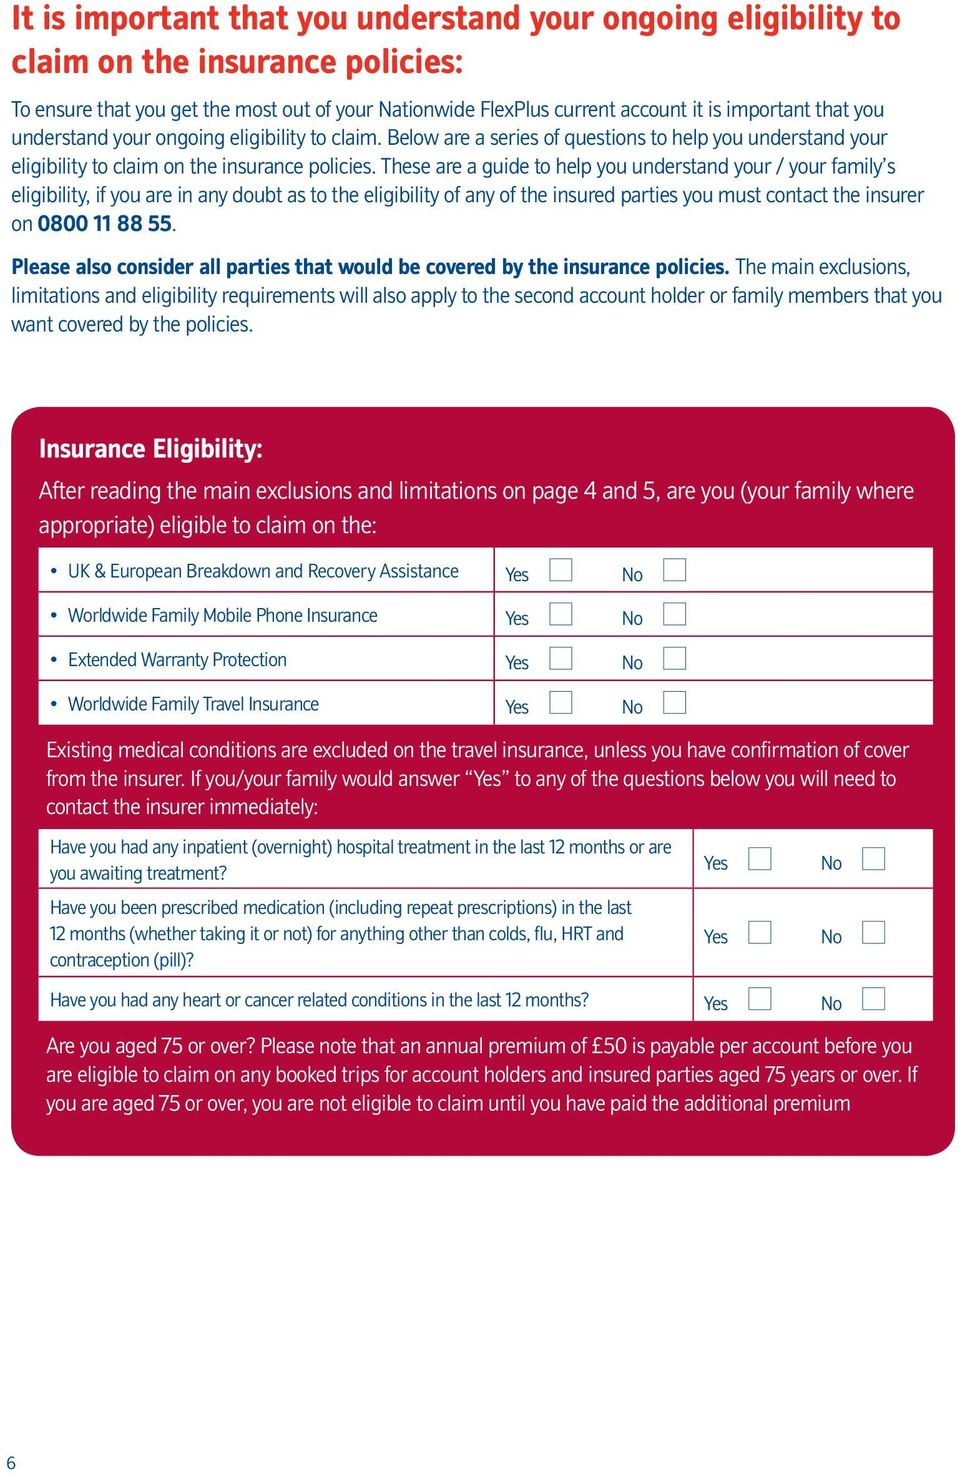 These are a guide to help you understand your / your family s eligibility, if you are in any doubt as to the eligibility of any of the insured parties you must contact the insurer on 0800 11 88 55.